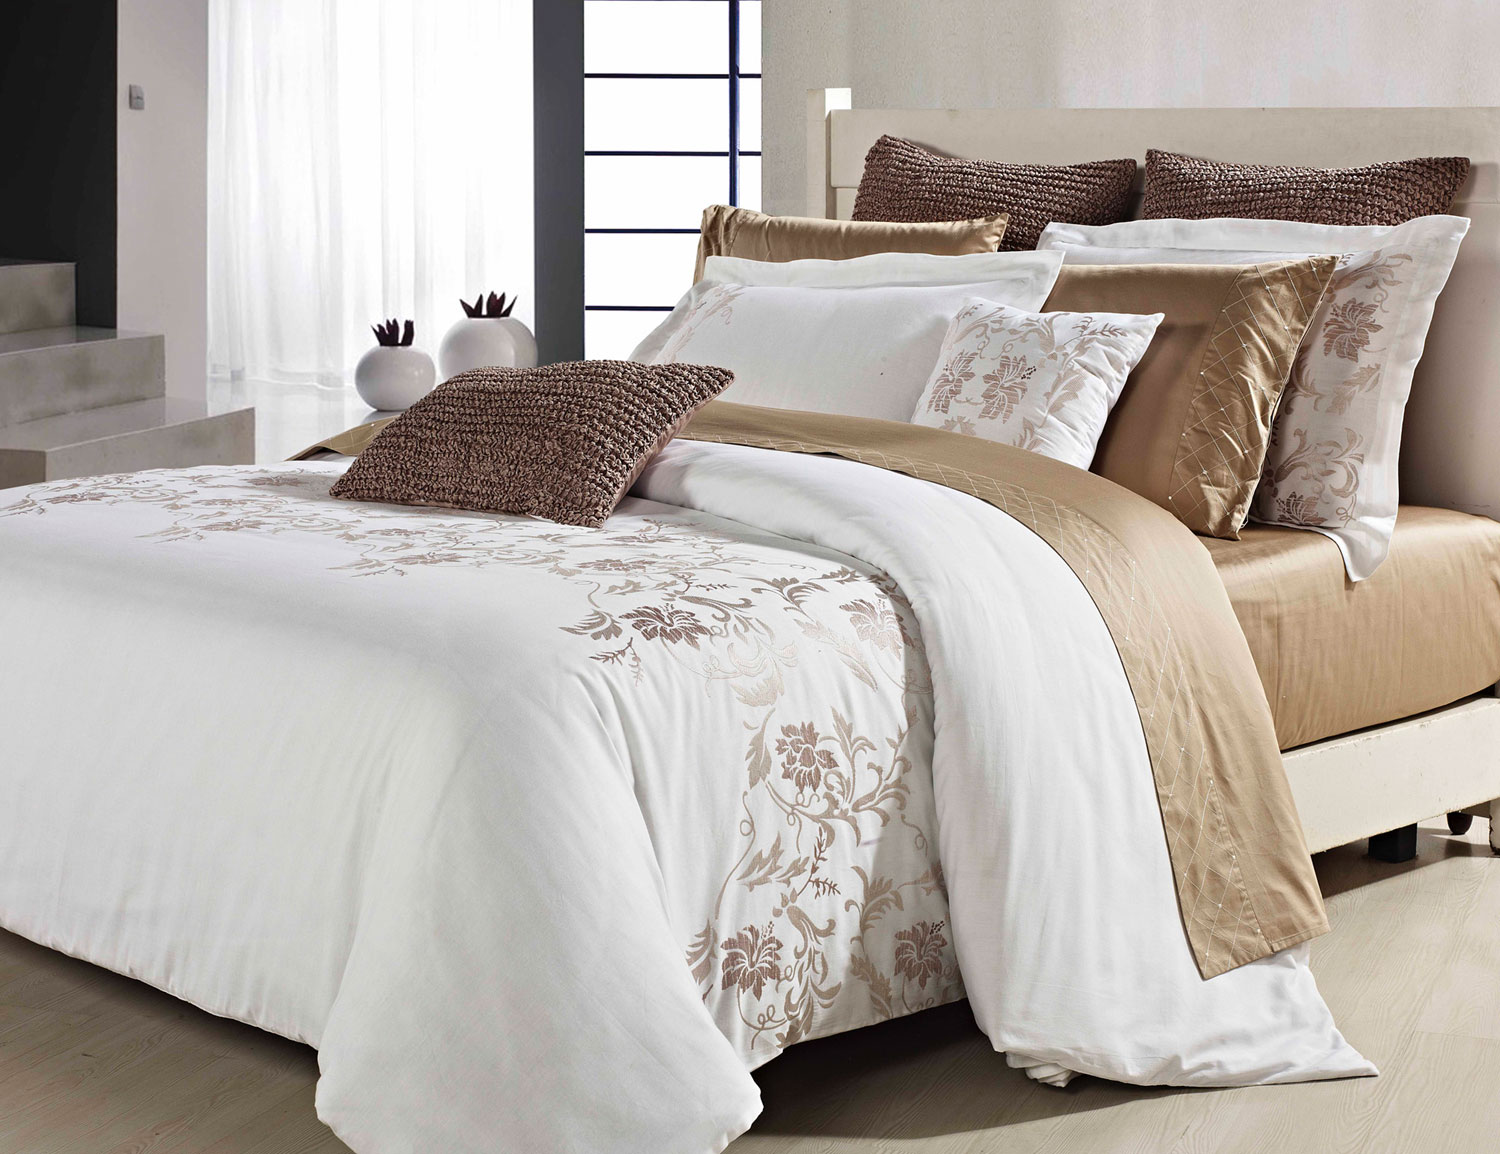 Park Avenue By Nygard Home Bedding Beddingsuperstore Com